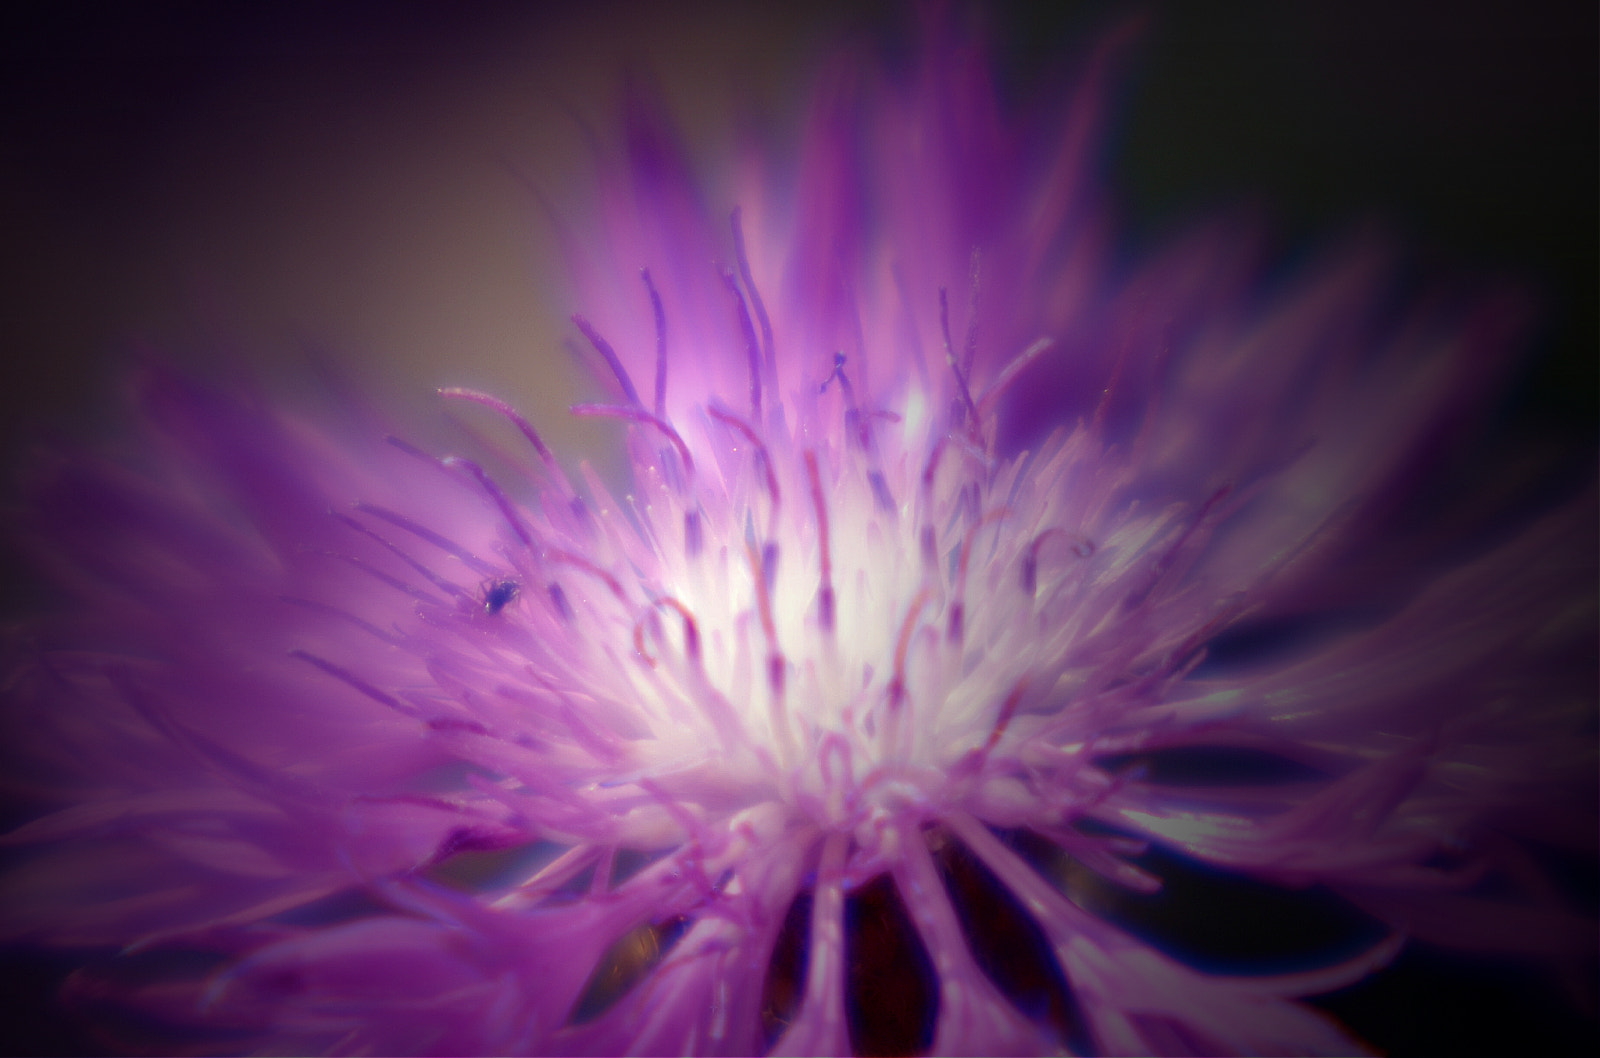 Photograph Purple Pincushion by Kyle Dyson on 500px